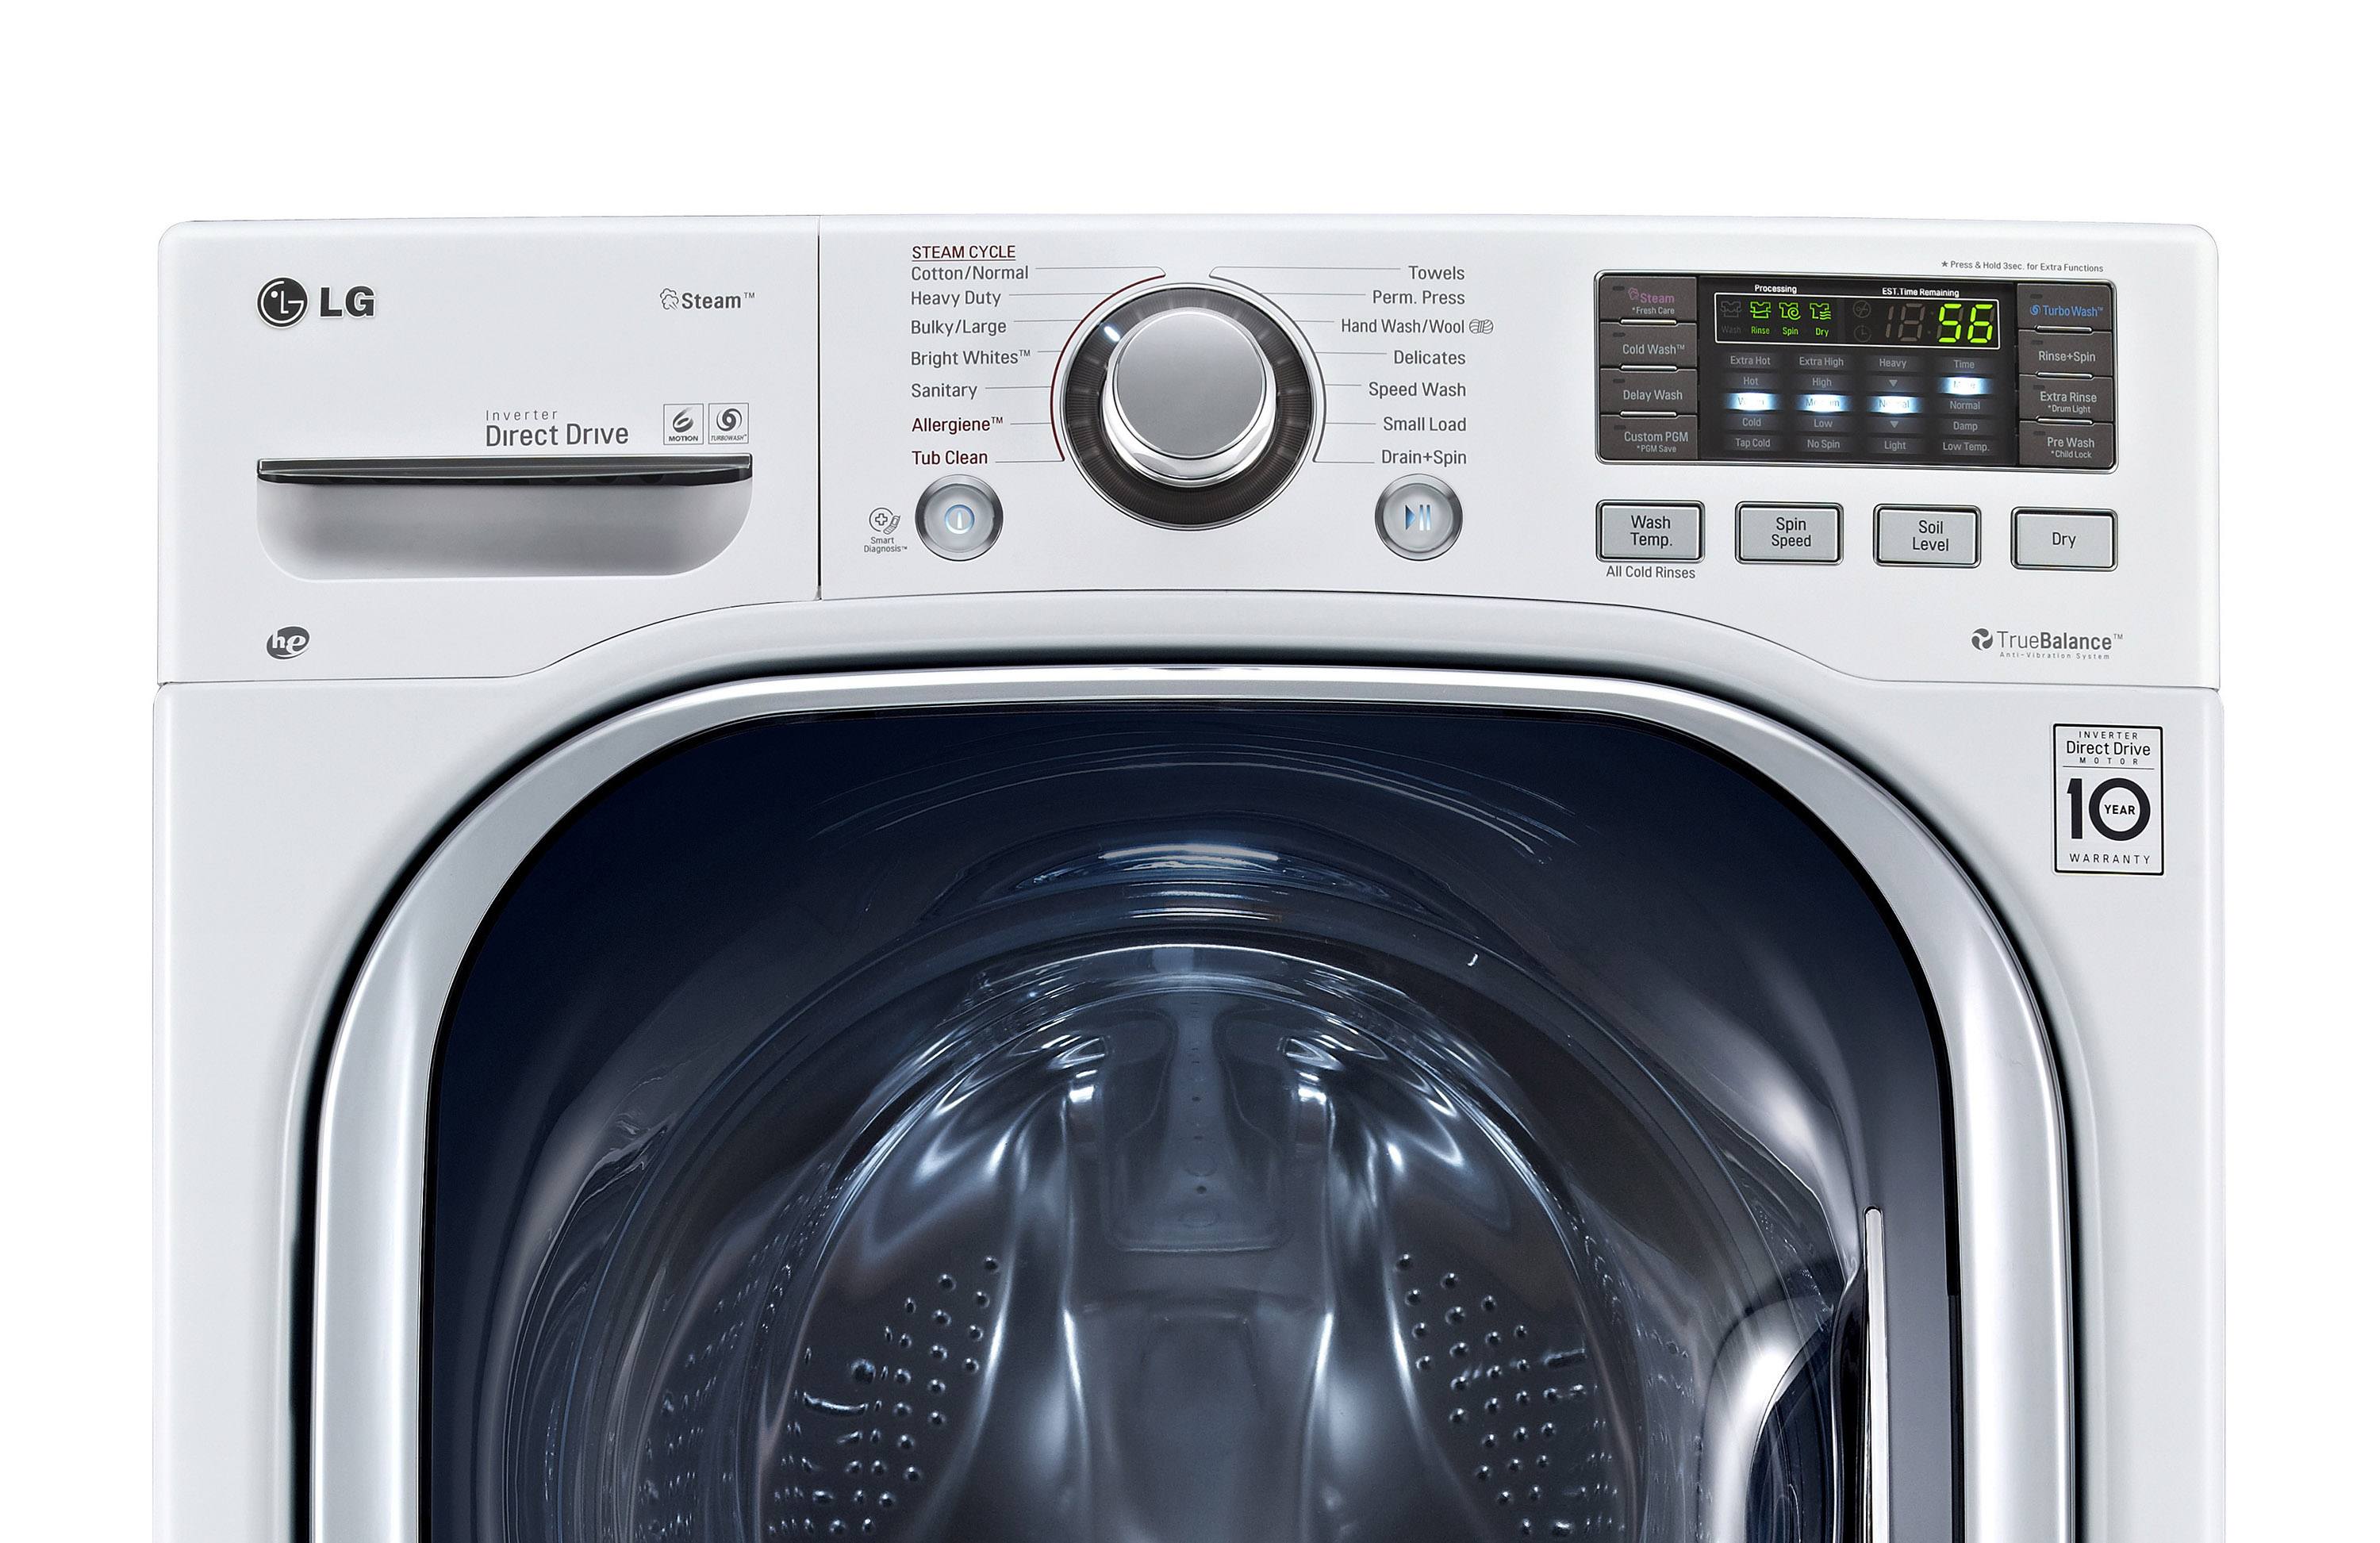 Lg 2 3 cu ft all in one washer and dryer - 732dc060df238f5ef573d70baa6baa7c 732dc060df238f5ef573d70baa6baa7c_214136 732dc060df238f5ef573d70baa6baa7c_214179 732dc060df238f5ef573d70baa6baa7c_214180